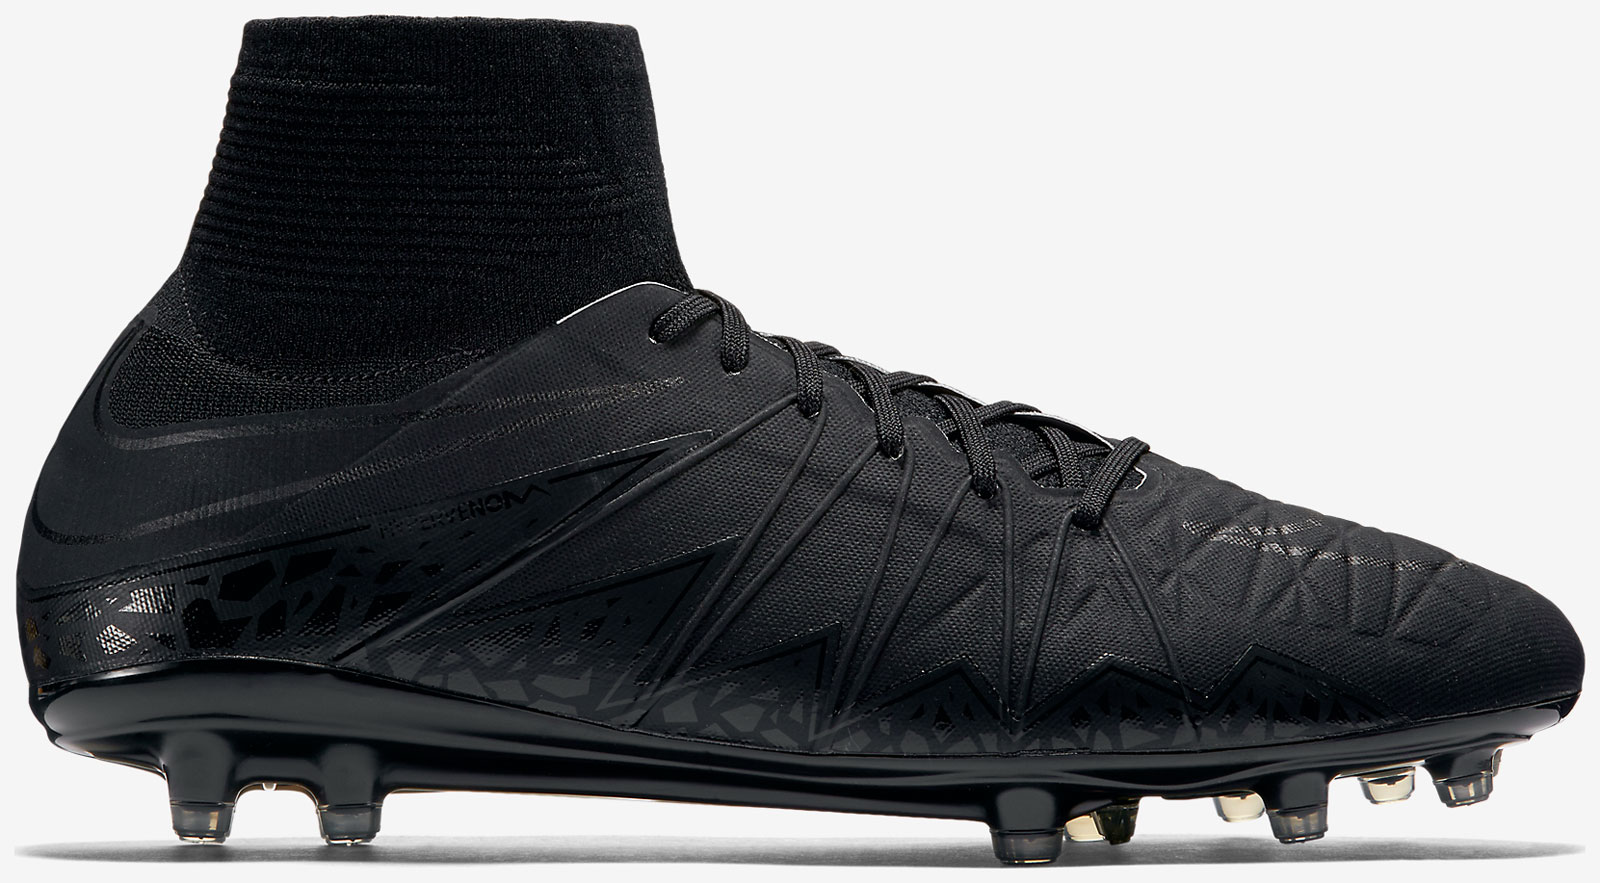 d6c85cd1701e The black-out Nike Hypervenom Phantom II Academy Pack Soccer Cleats  introduce a stealth look